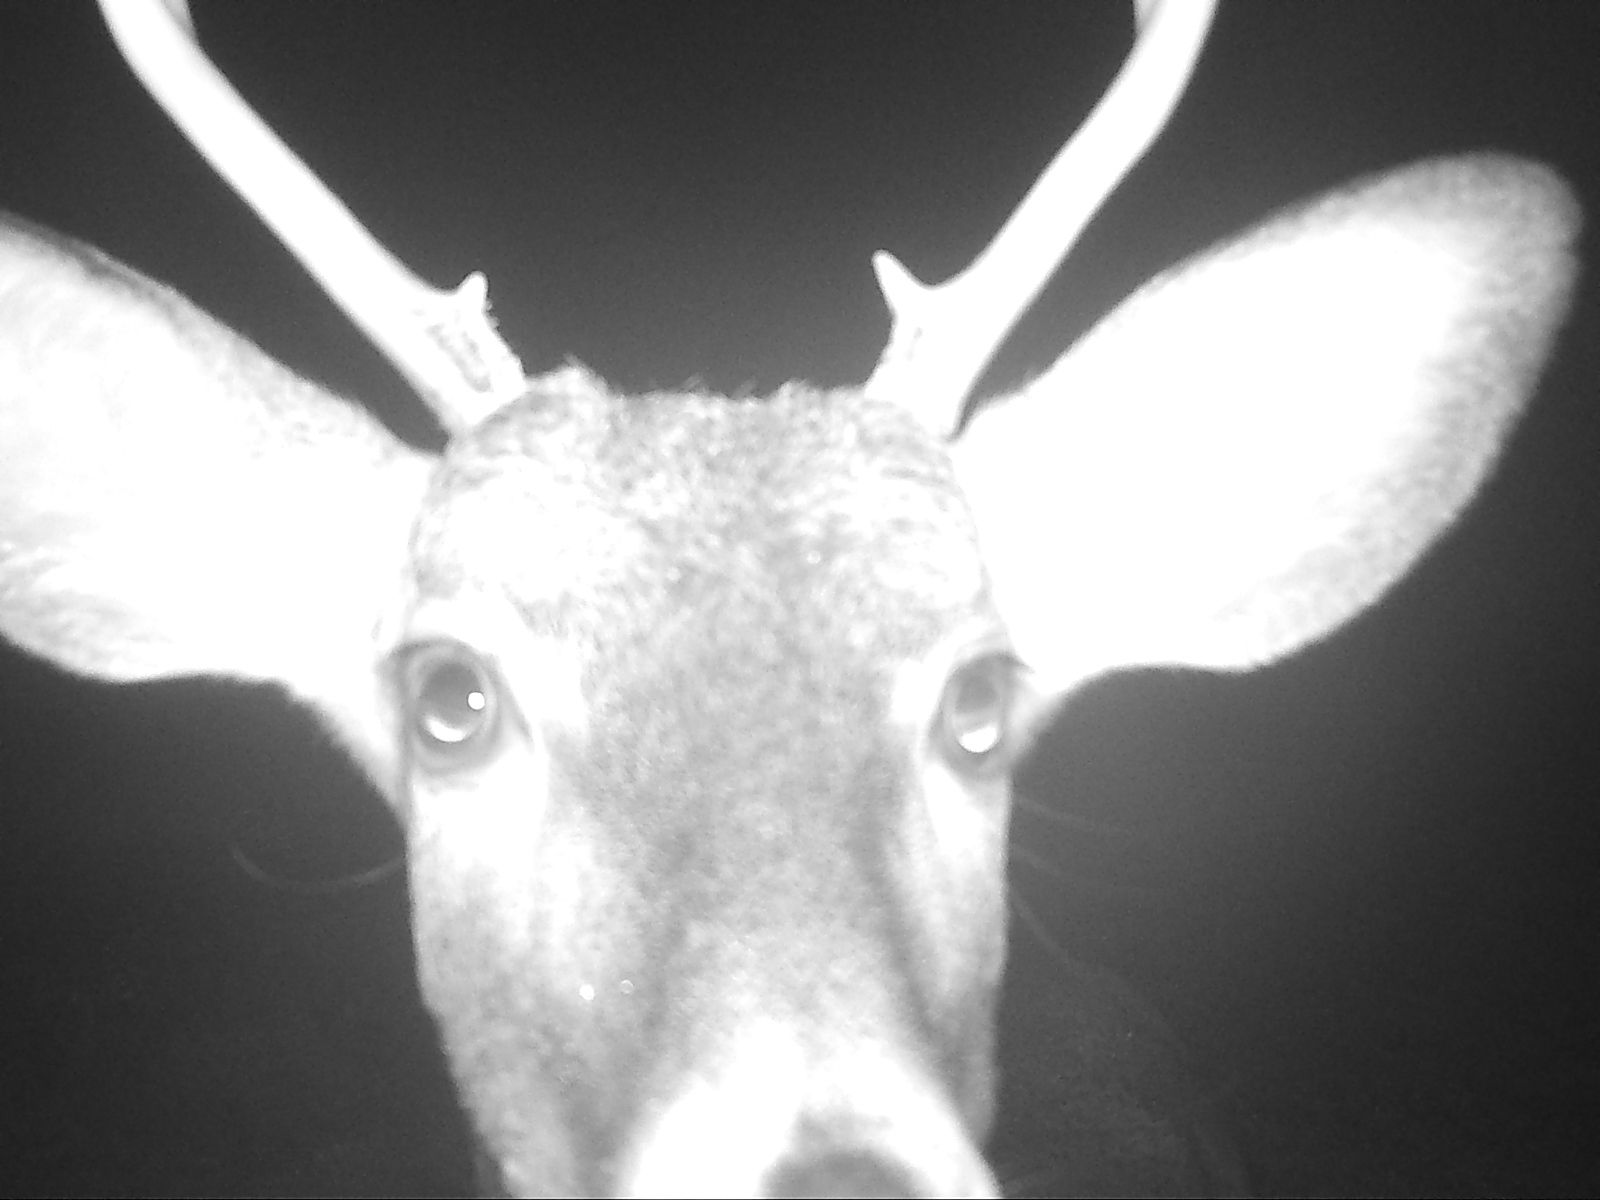 A curious deer gets up close and personal with the trail camera. October 13, 2017